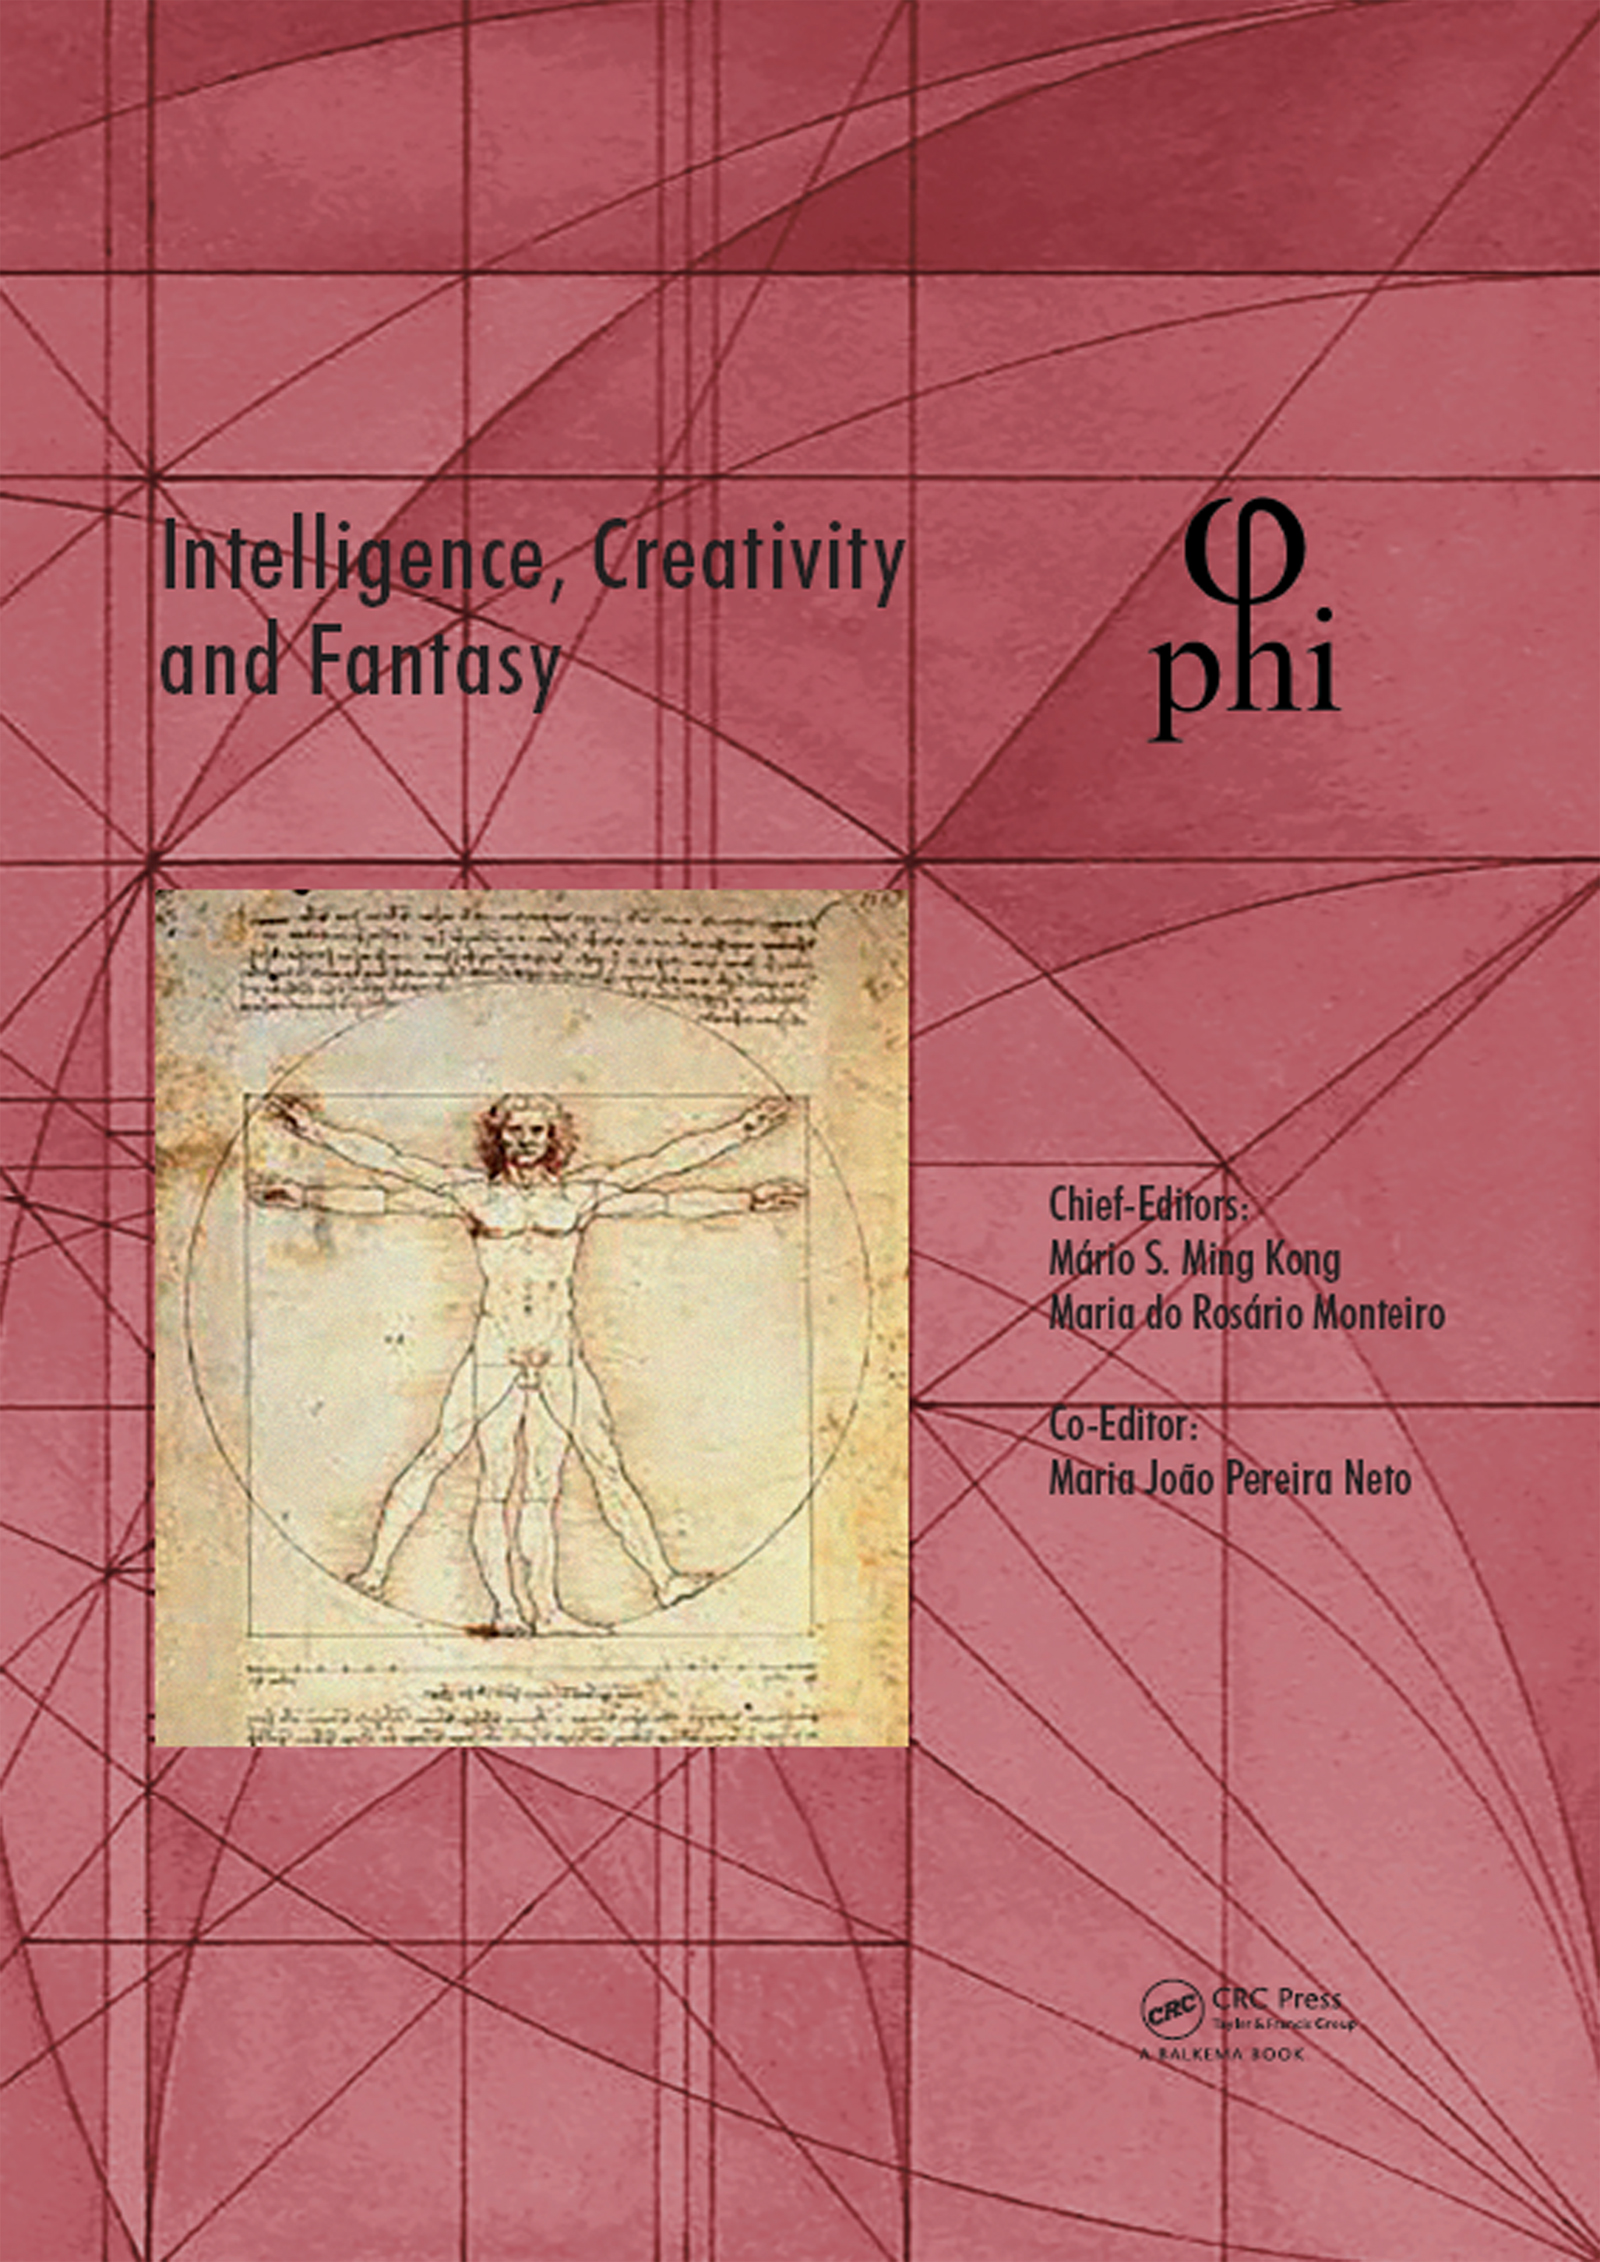 Intelligence, Creativity and Fantasy: Proceedings of the 5th International Multidisciplinary Congress (PHI 2019), October 7-9, 2019, Paris, France book cover